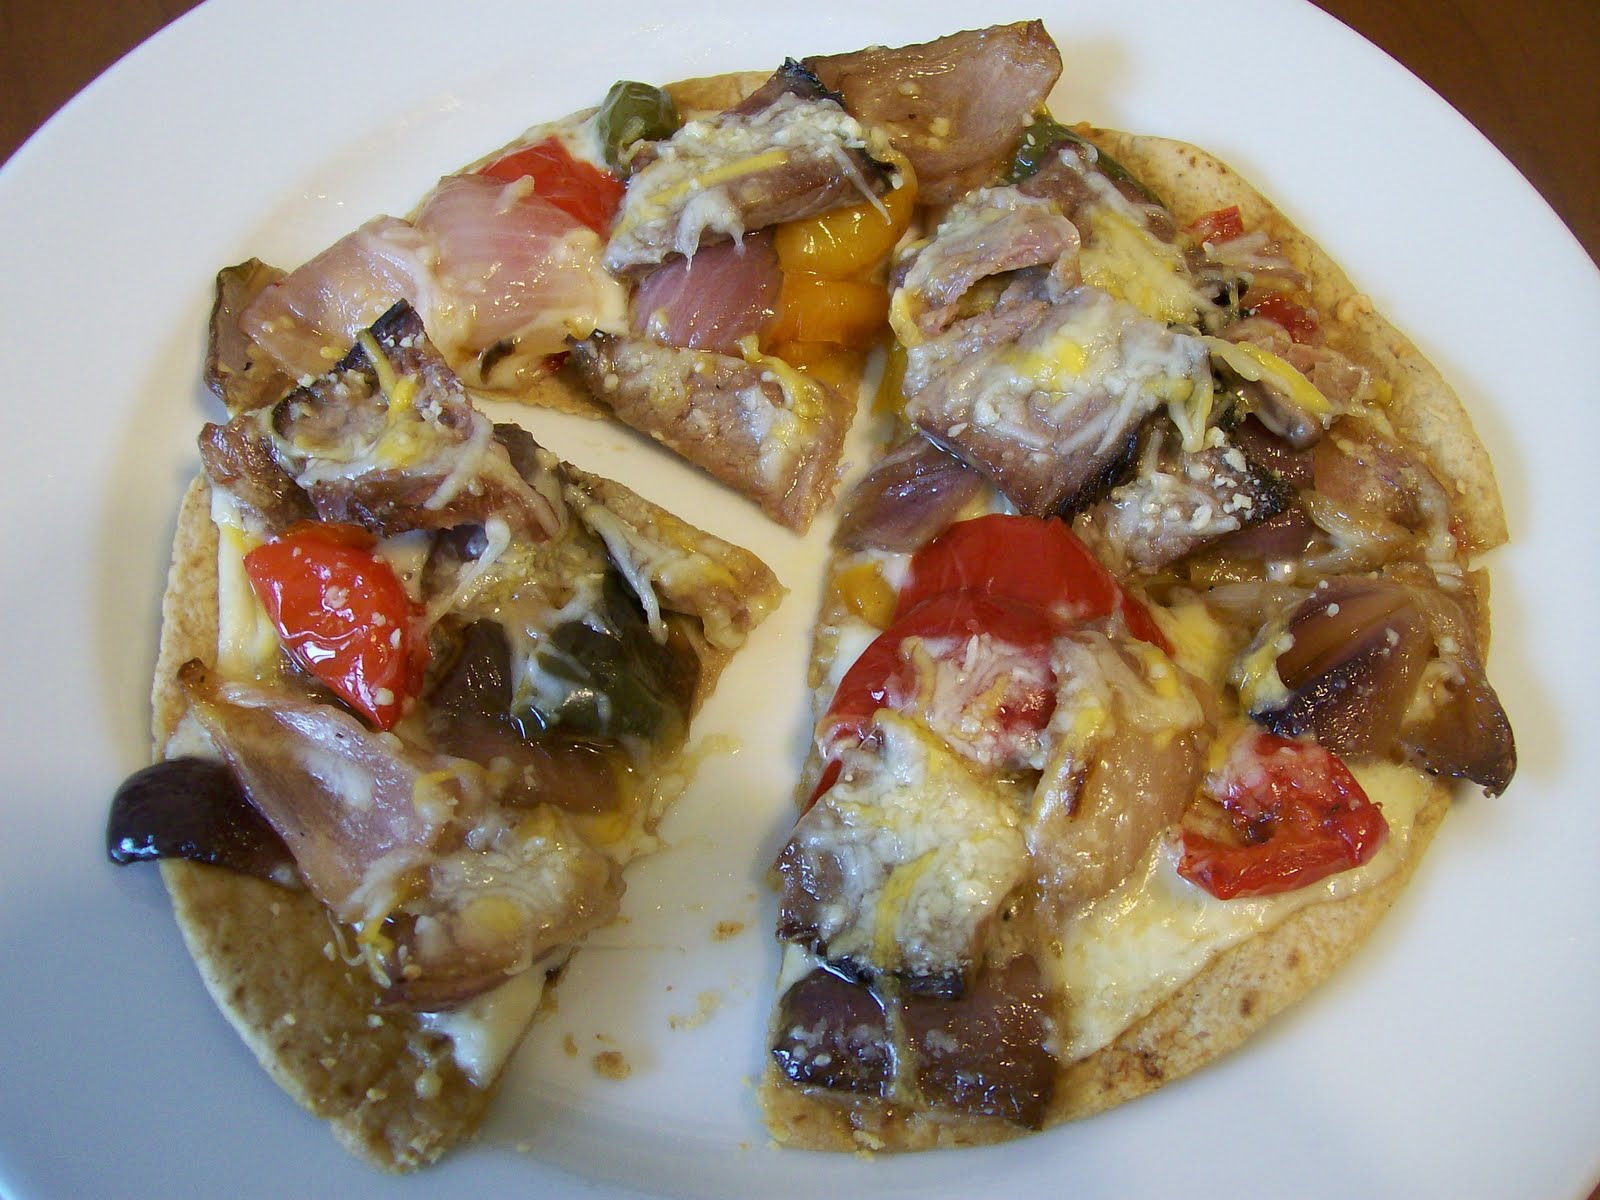 ... Steak, Roasted Peppers and Onions, a sprinkle of Colby-Jack Cheese and